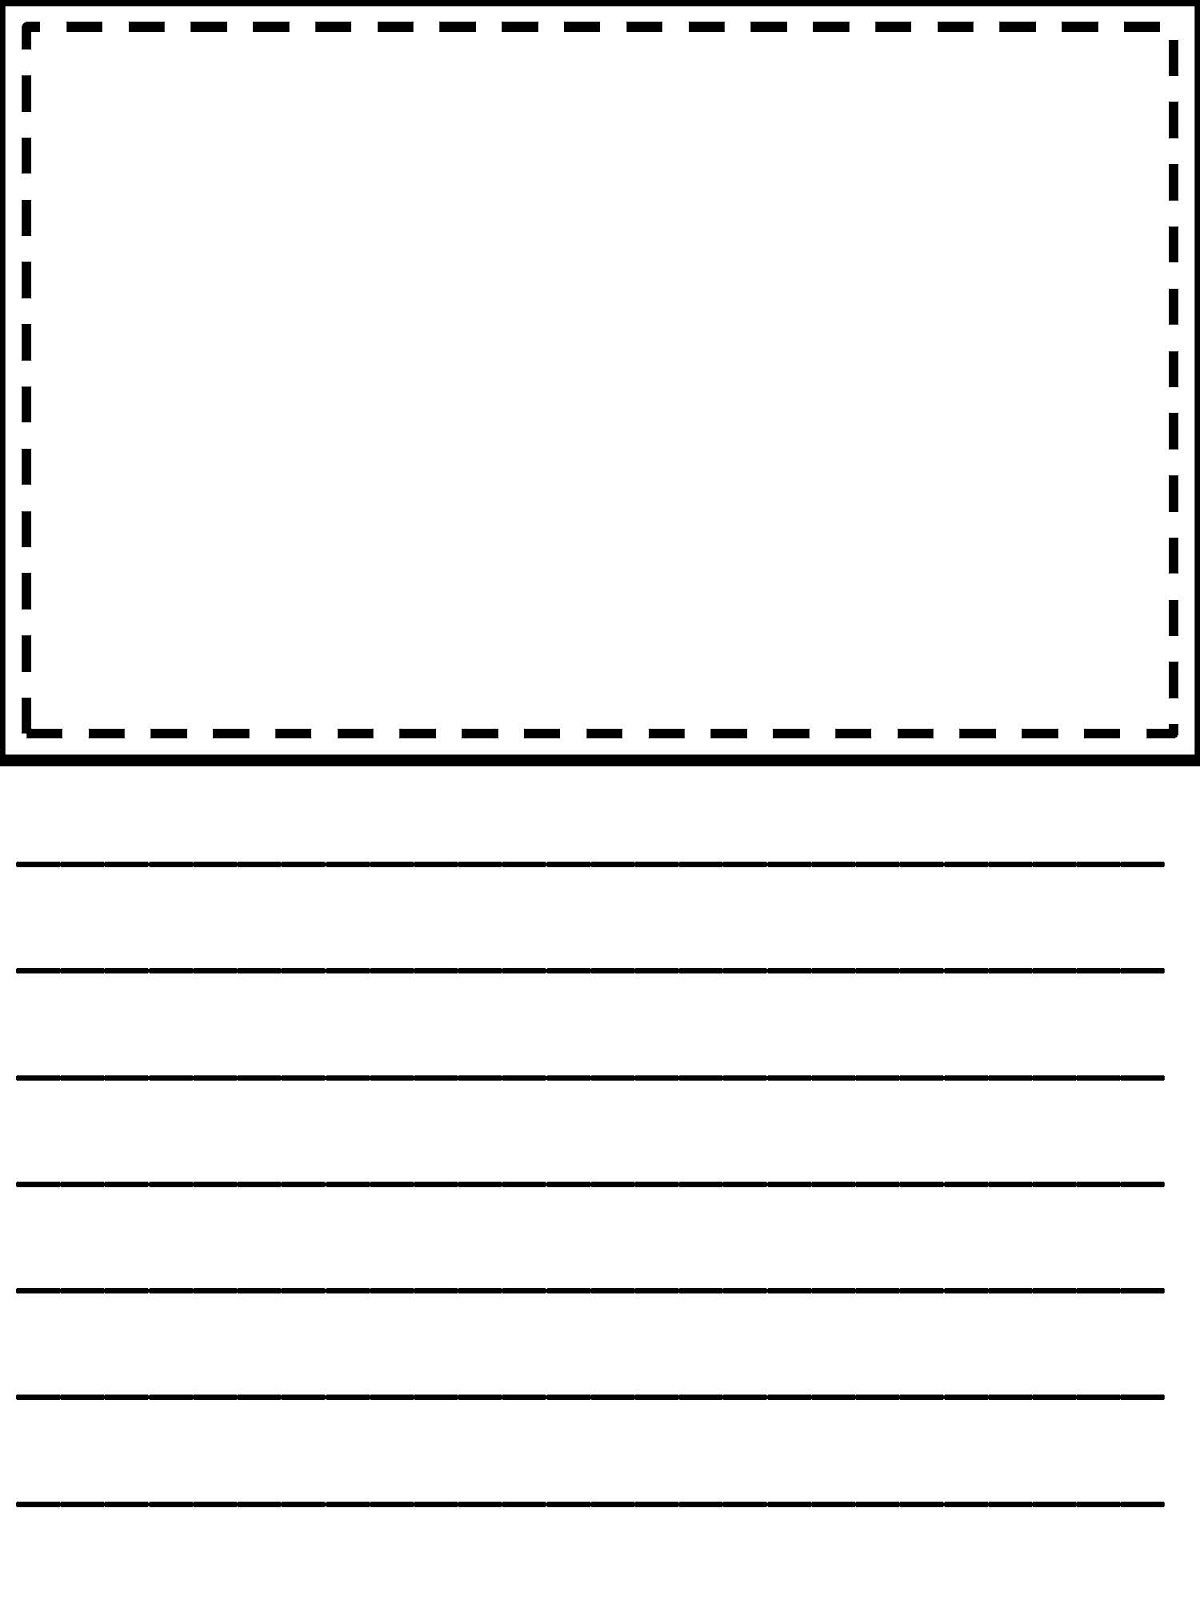 37 Printable Lined Paper Template For Kids Download